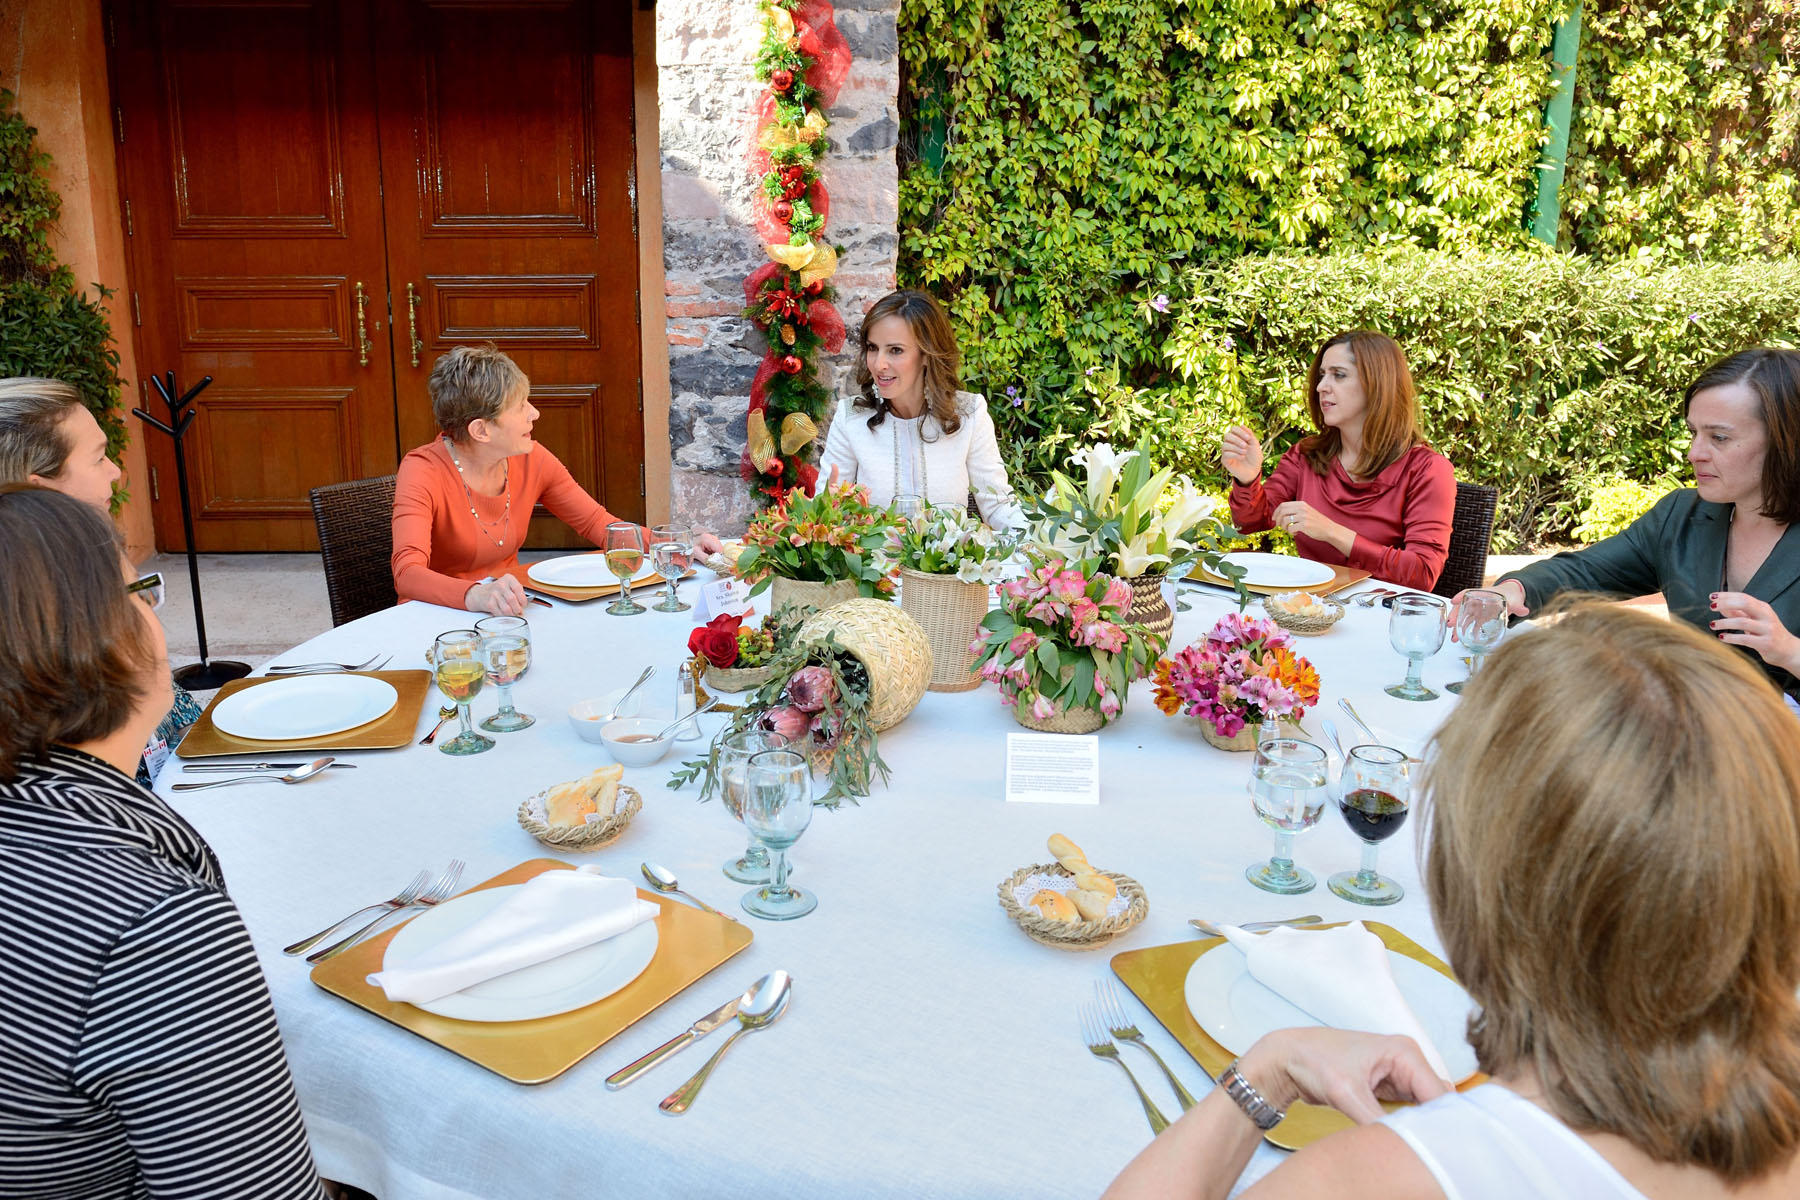 Her Excellency really enjoyed the time she spent with the First Lady of Querétaro.